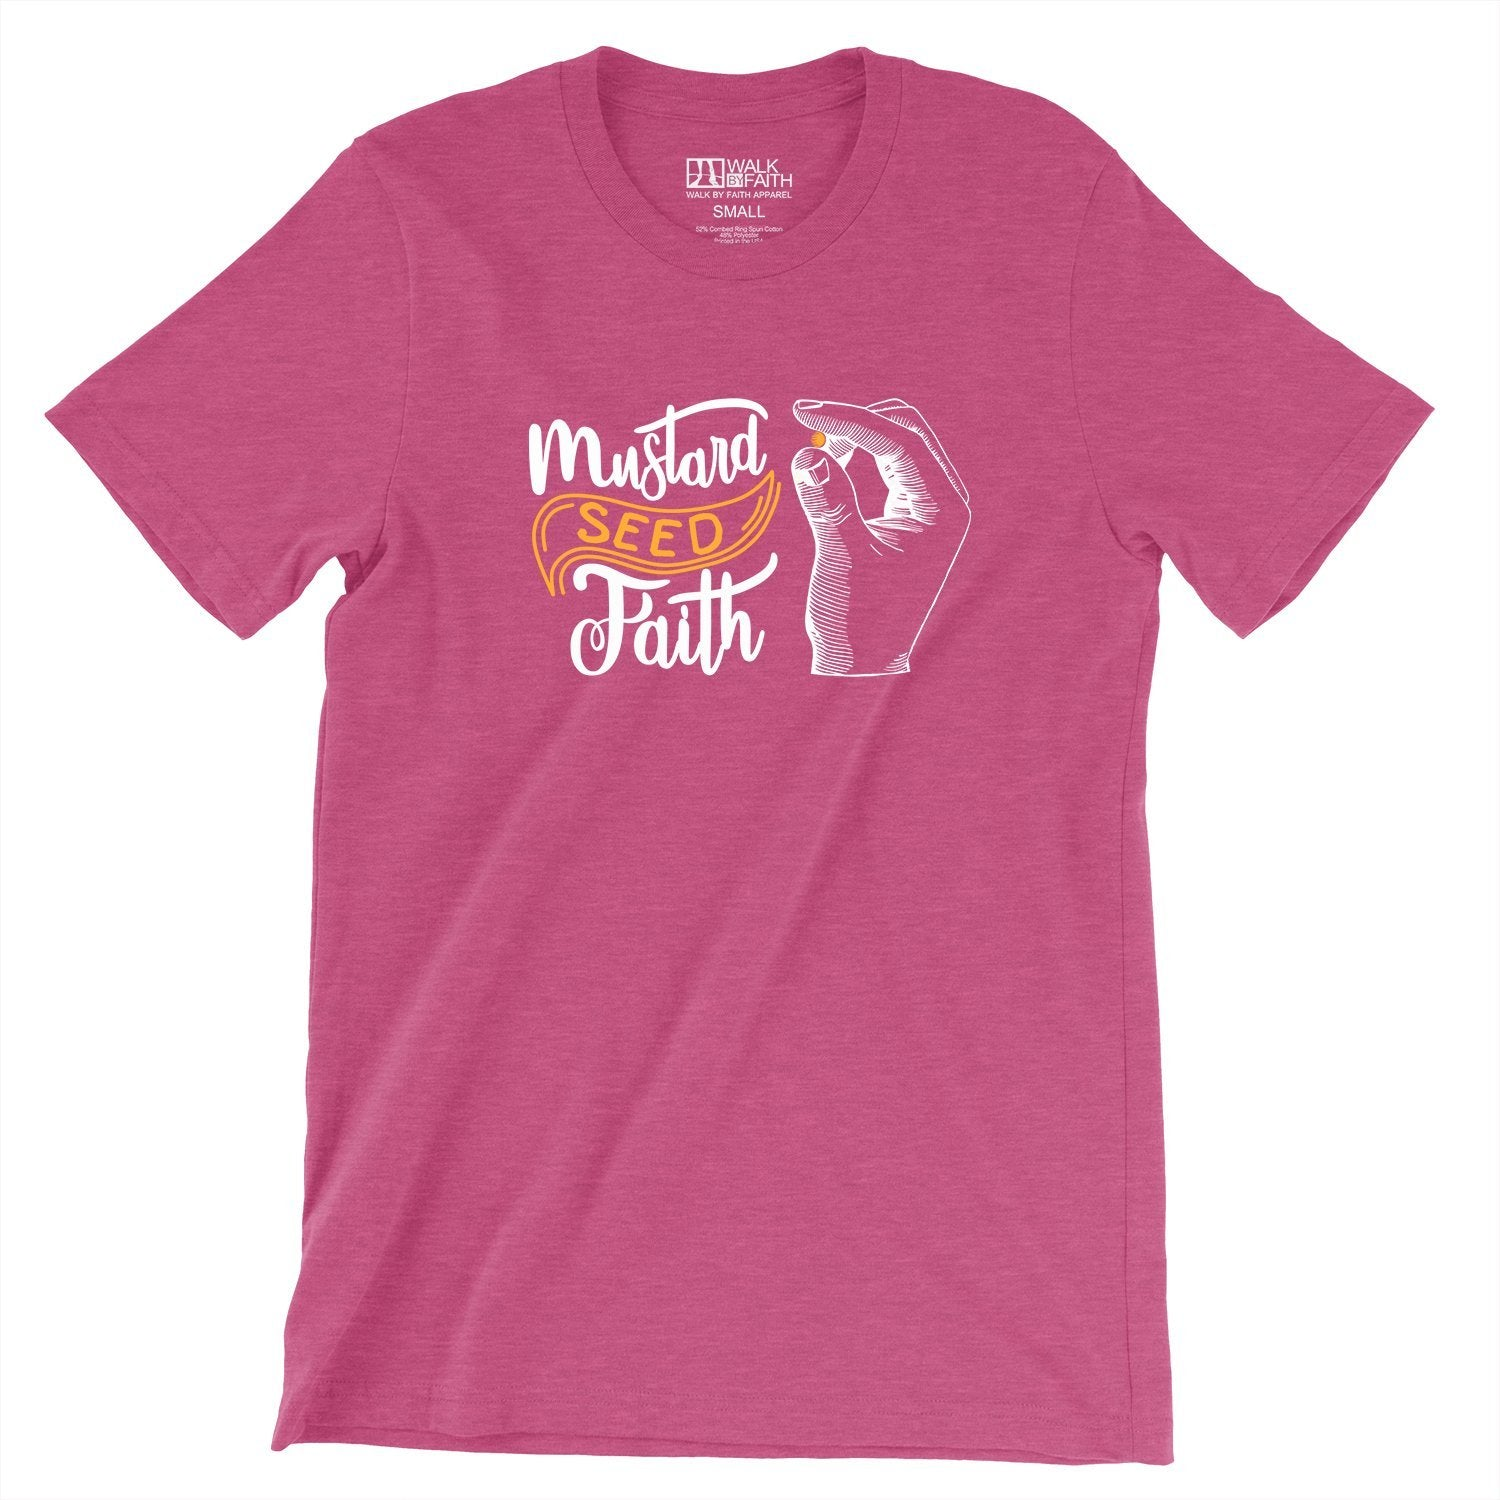 """Mustard Seed Faith"" - Women's Classic Cotton Tee - Walk by Faith Apparel"